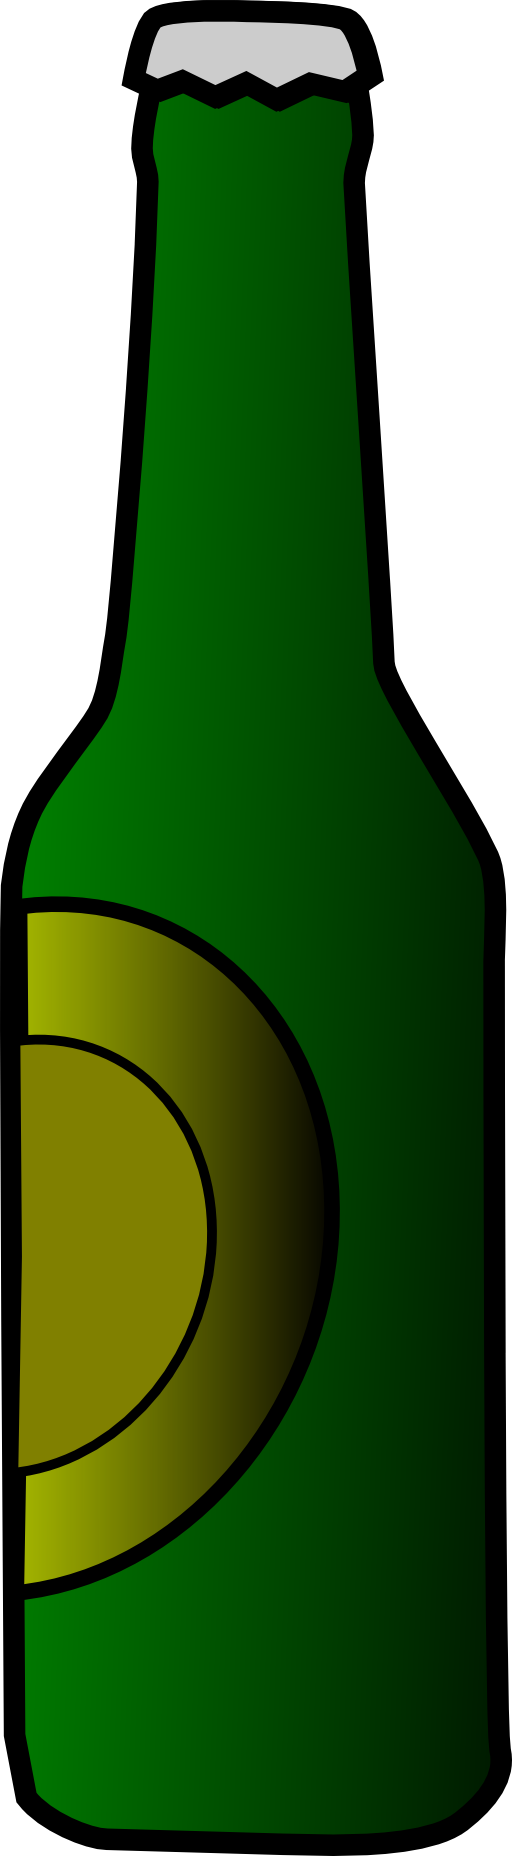 Beer Bottle Clipart I2clipart Royalty Fr-Beer Bottle Clipart I2clipart Royalty Free Public Domain Clipart-5